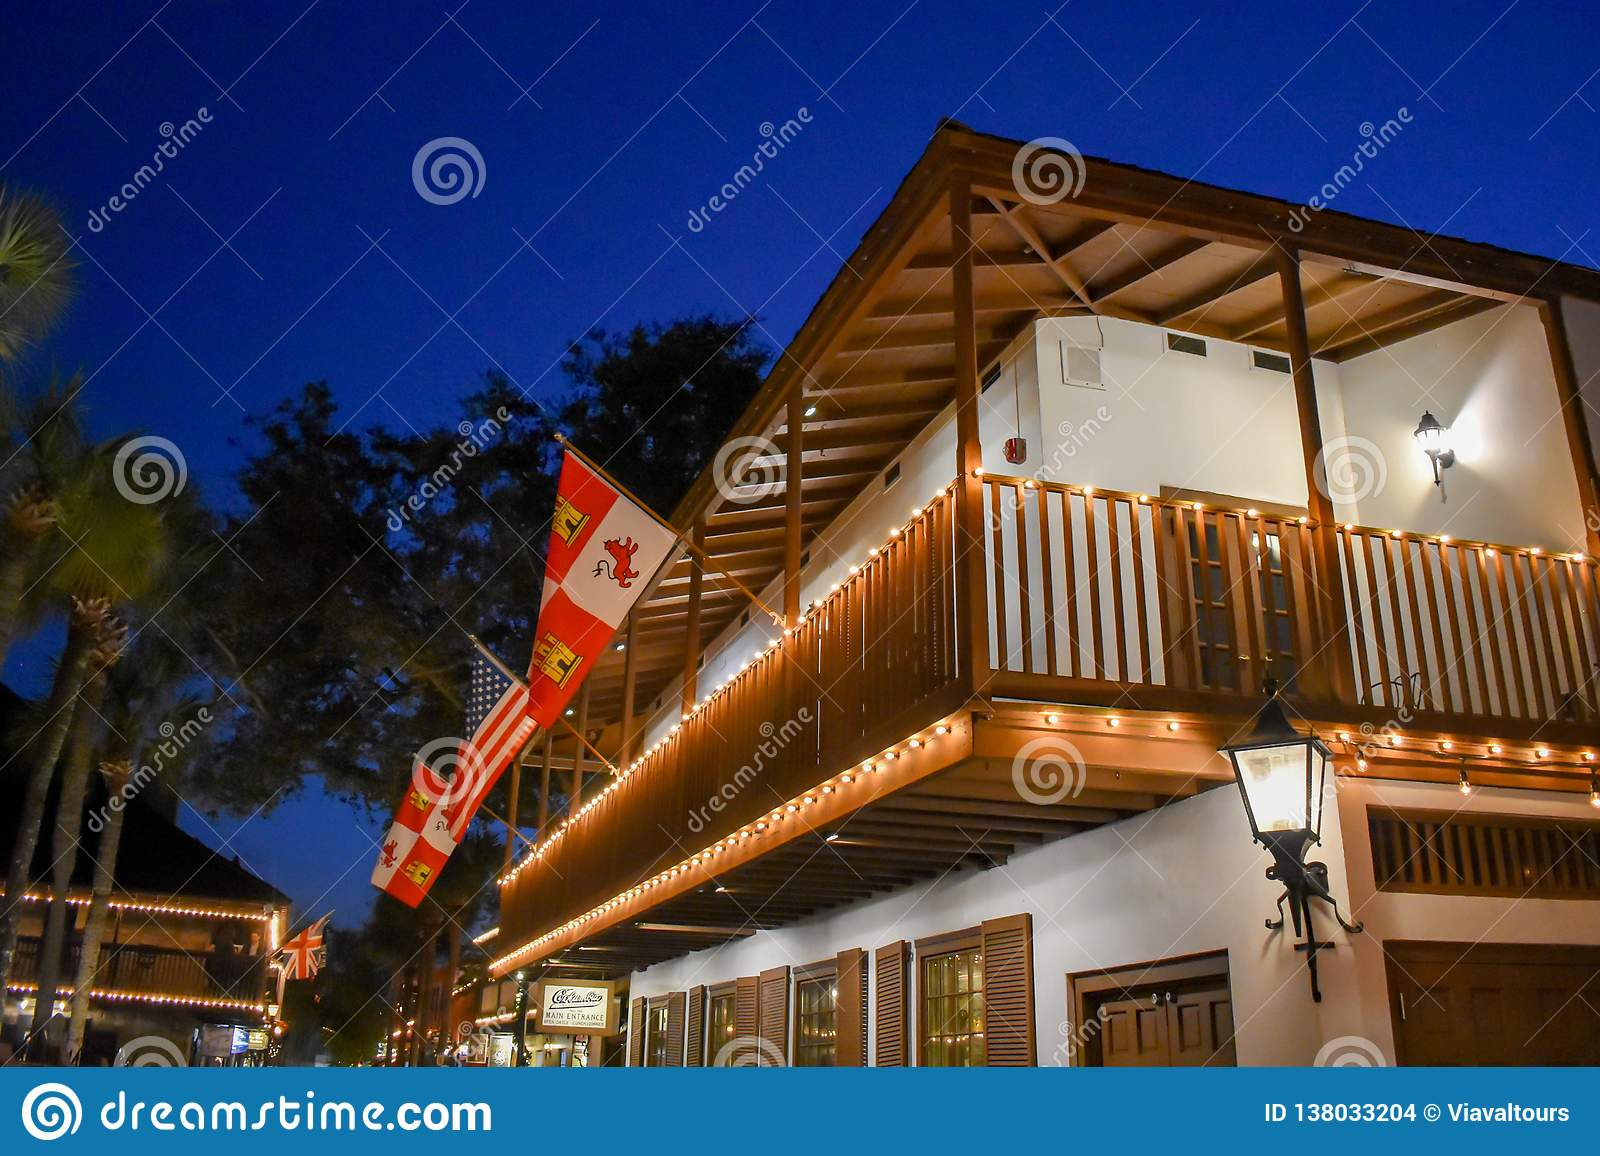 Top view of restaurant in seventeenth century house adn Flags at Old Town in Florida`s Historic Coast .